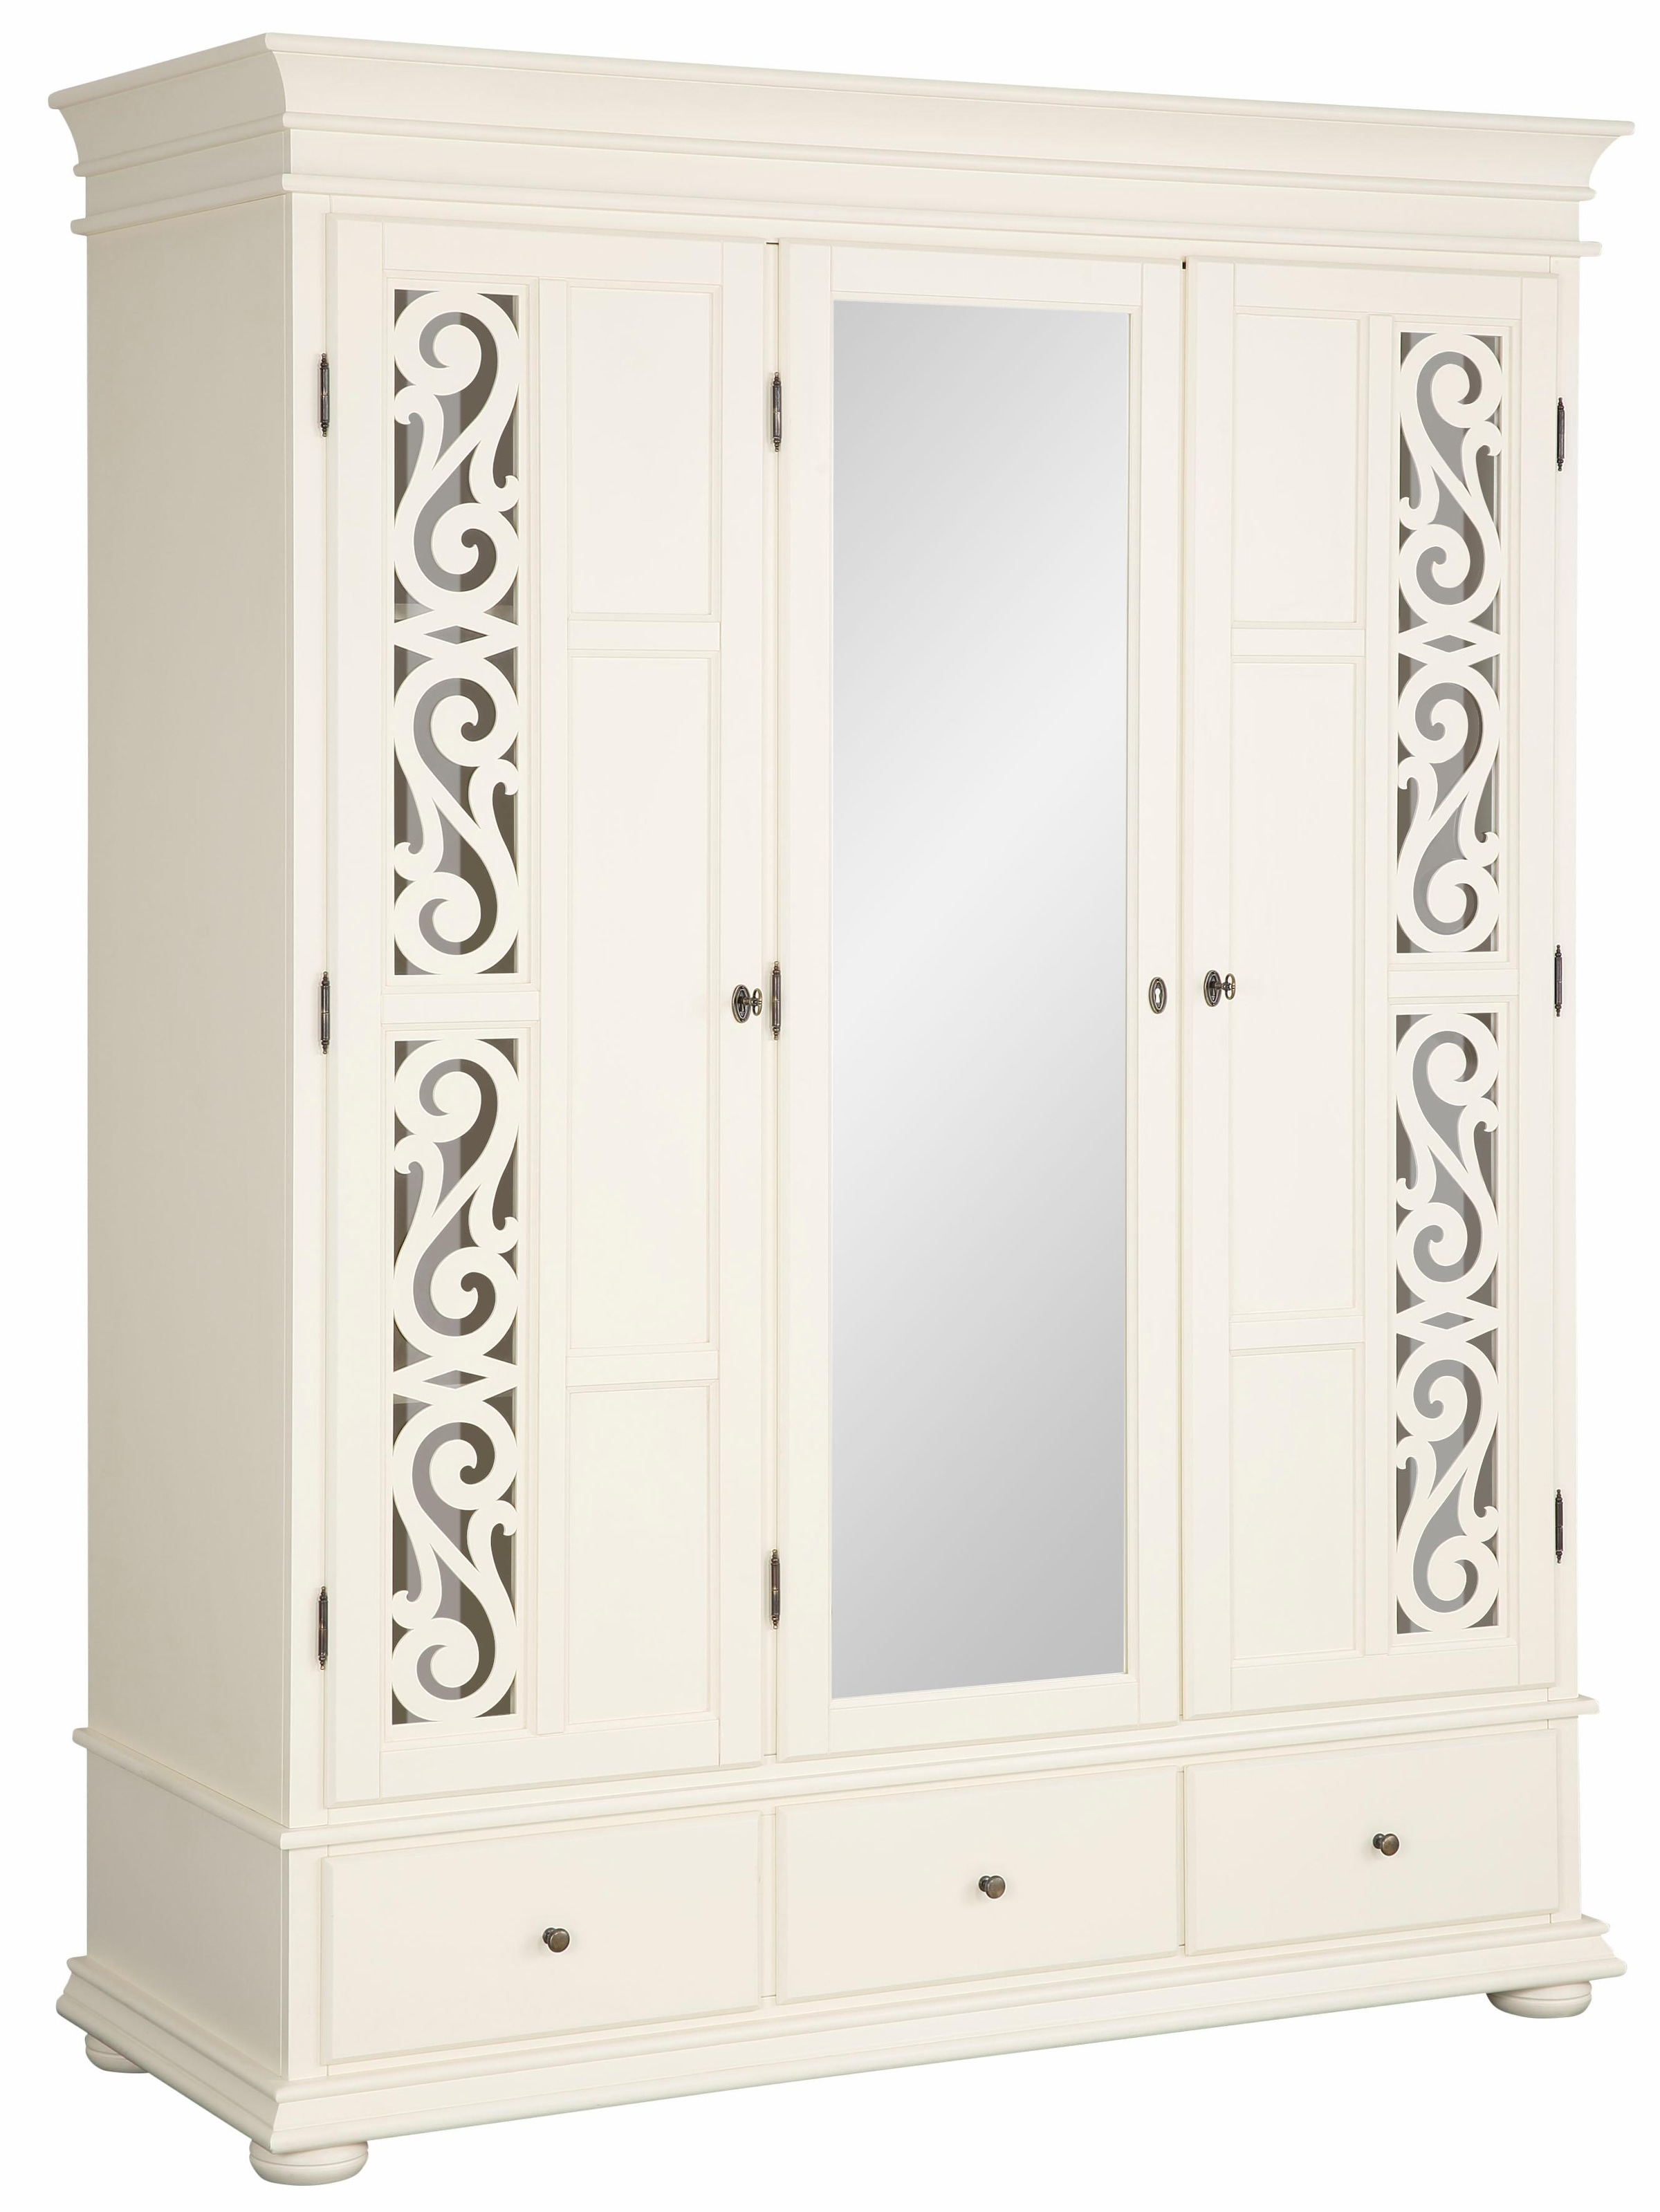 Premium Collection By Home Affaire Drehtürenschrank Arabeske Bestellen Baur